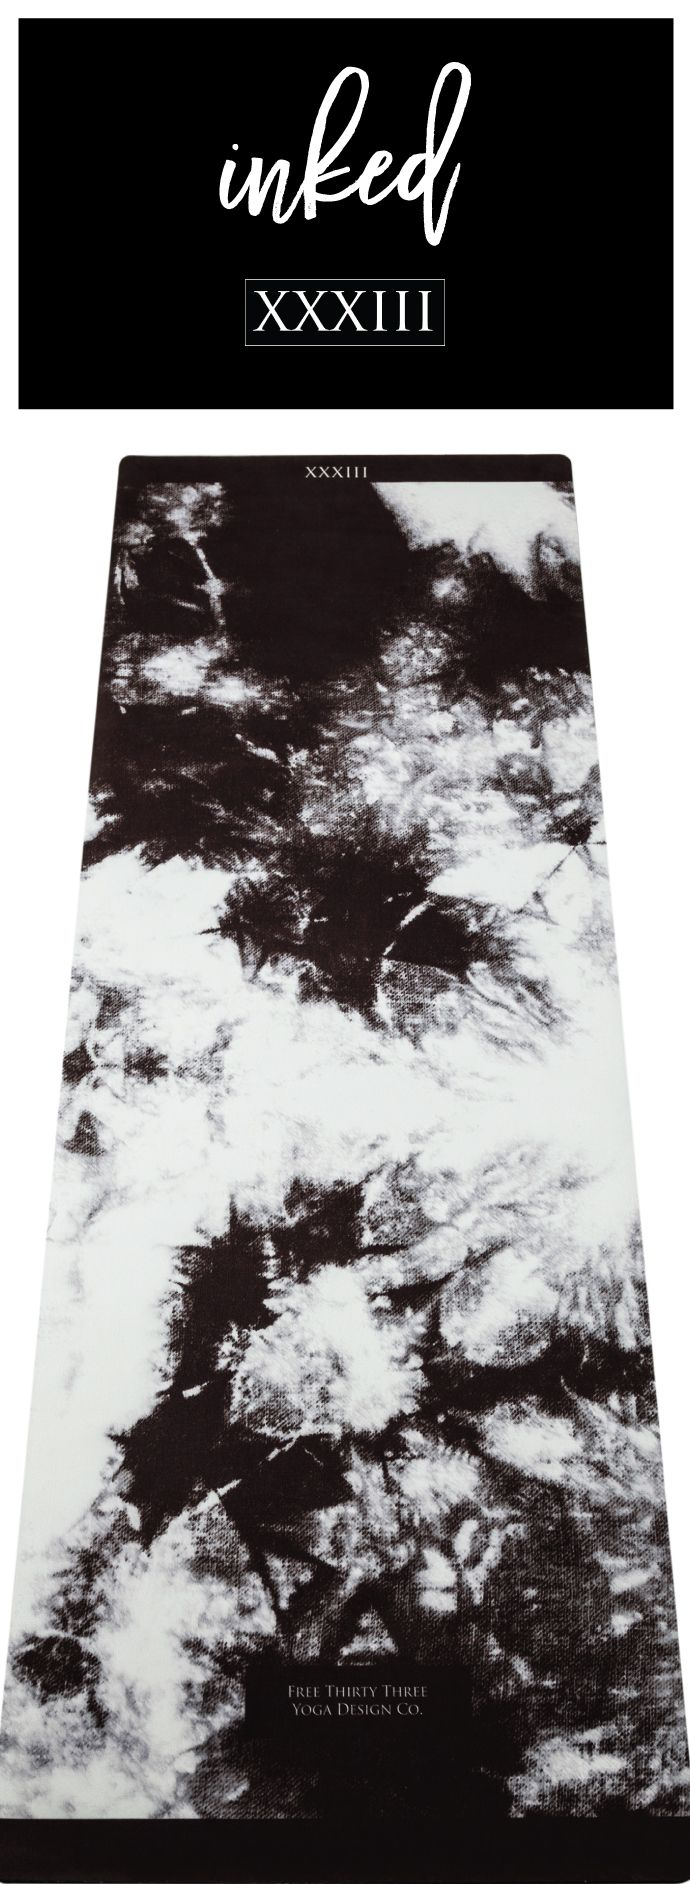 THIS JUST IN!  INKED YOGA MAT!  Beautiful Yoga Mats made functional and stylish.  Black and White tie dye yoga mat.  get inked by free thirty three yoga design co.